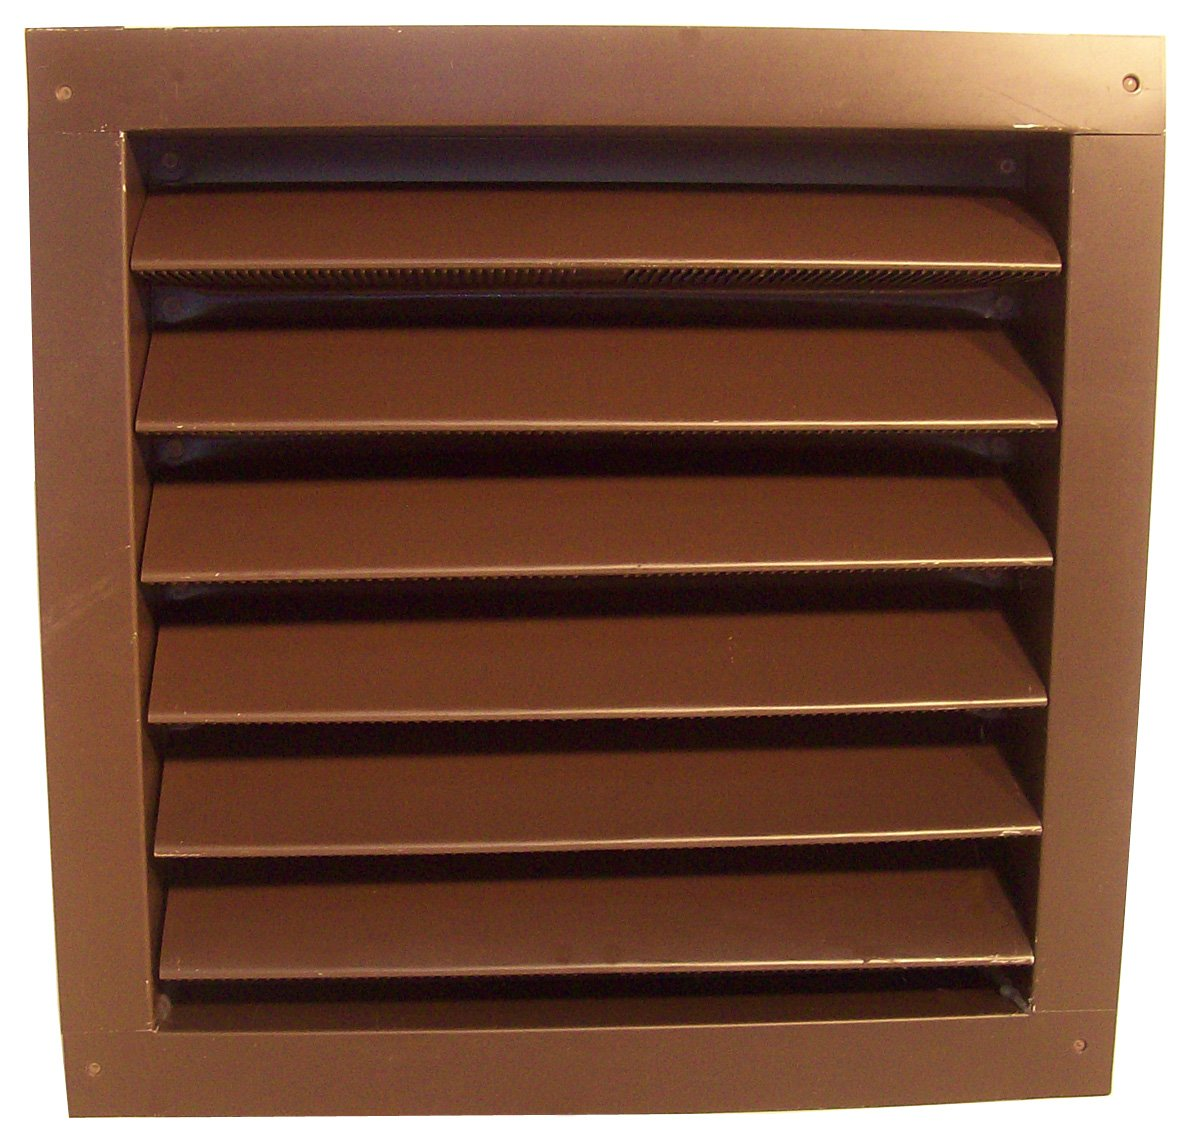 Norwesco 553530 Brown Recessed Attic Vent, 12-Inch by 18-Inch